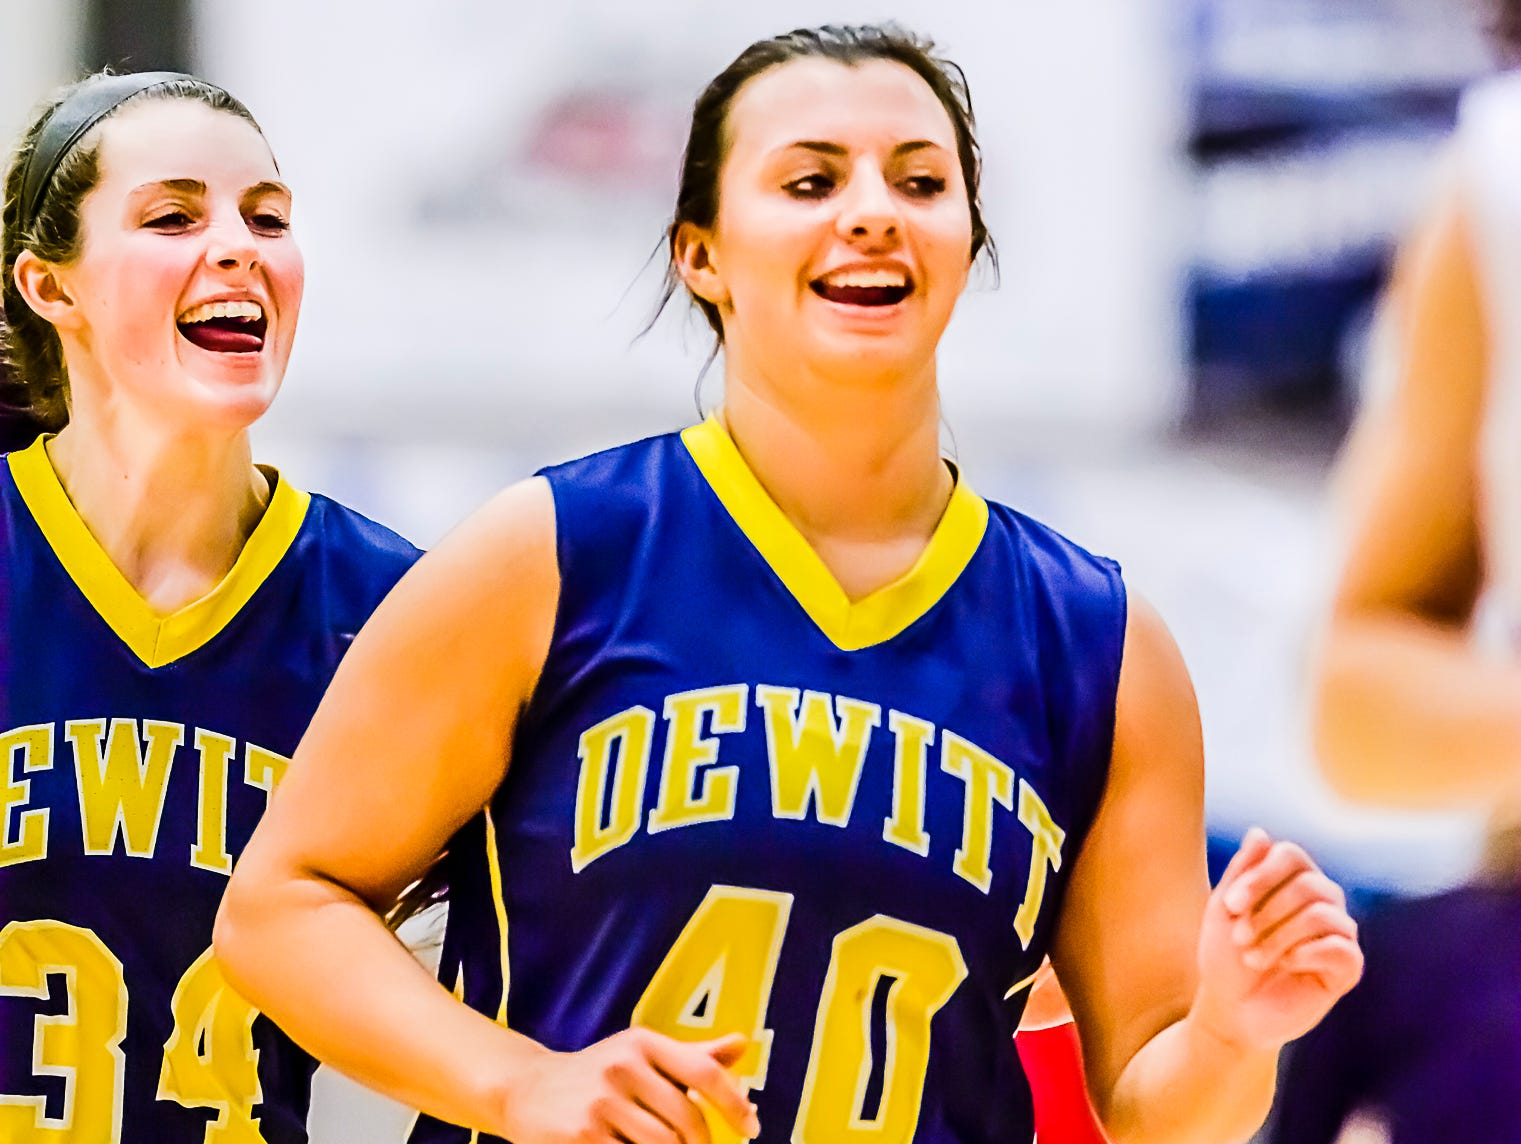 Grace George ,left, and Summer Ward of DeWitt smile as they leave the court after their win over St. Johns Friday February 5, 2016 in St. Johns. KEVIN W. FOWLER PHOTO